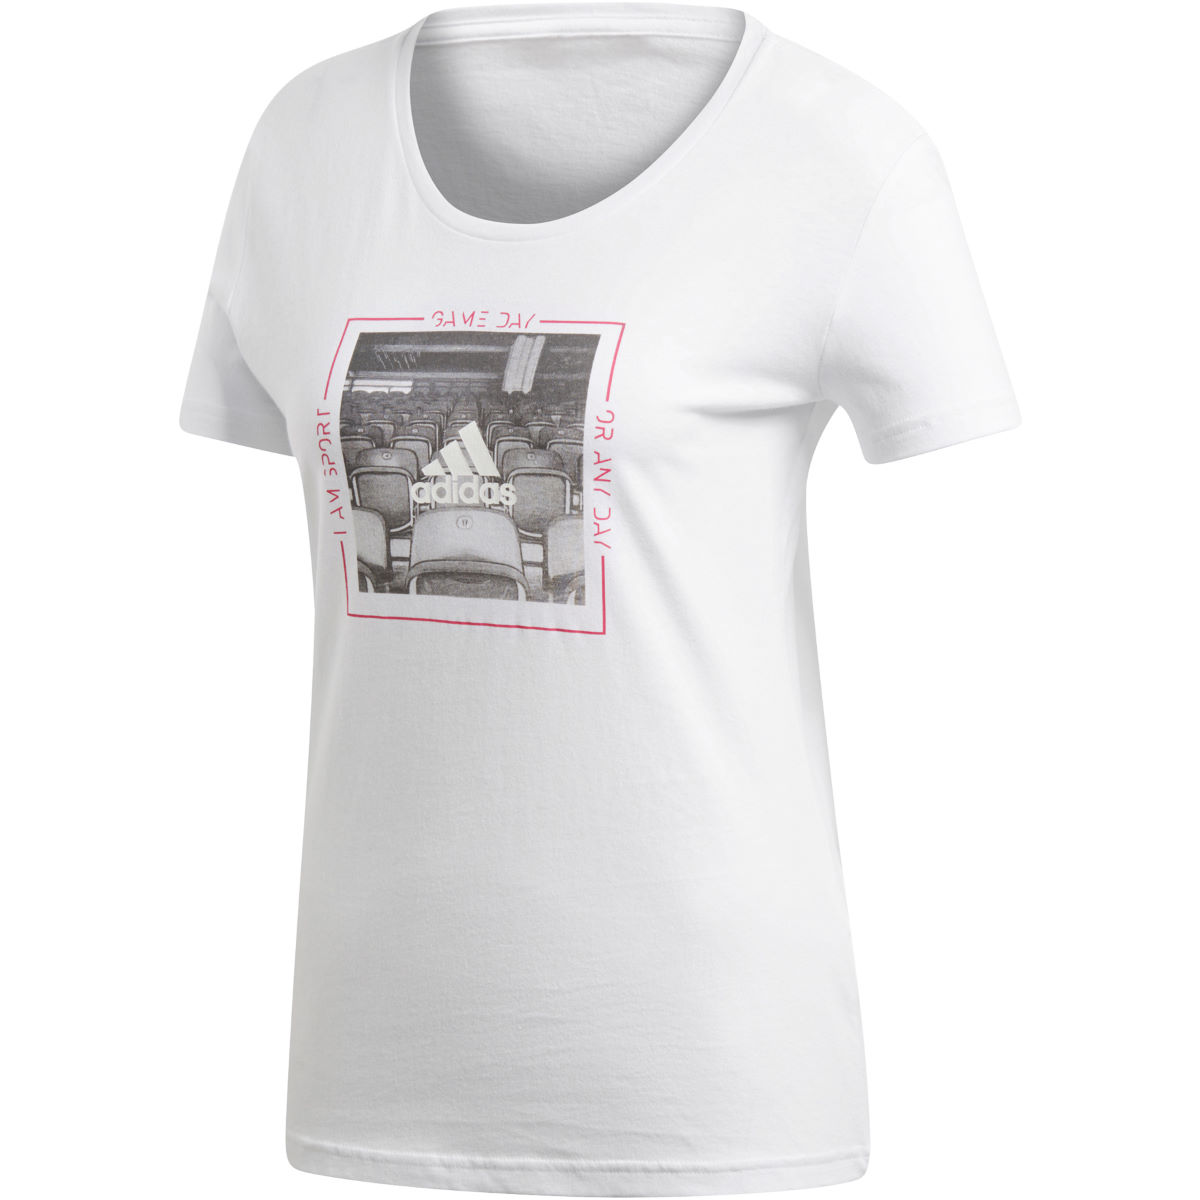 adidas Women's Mood T-Shirt - Camisetas